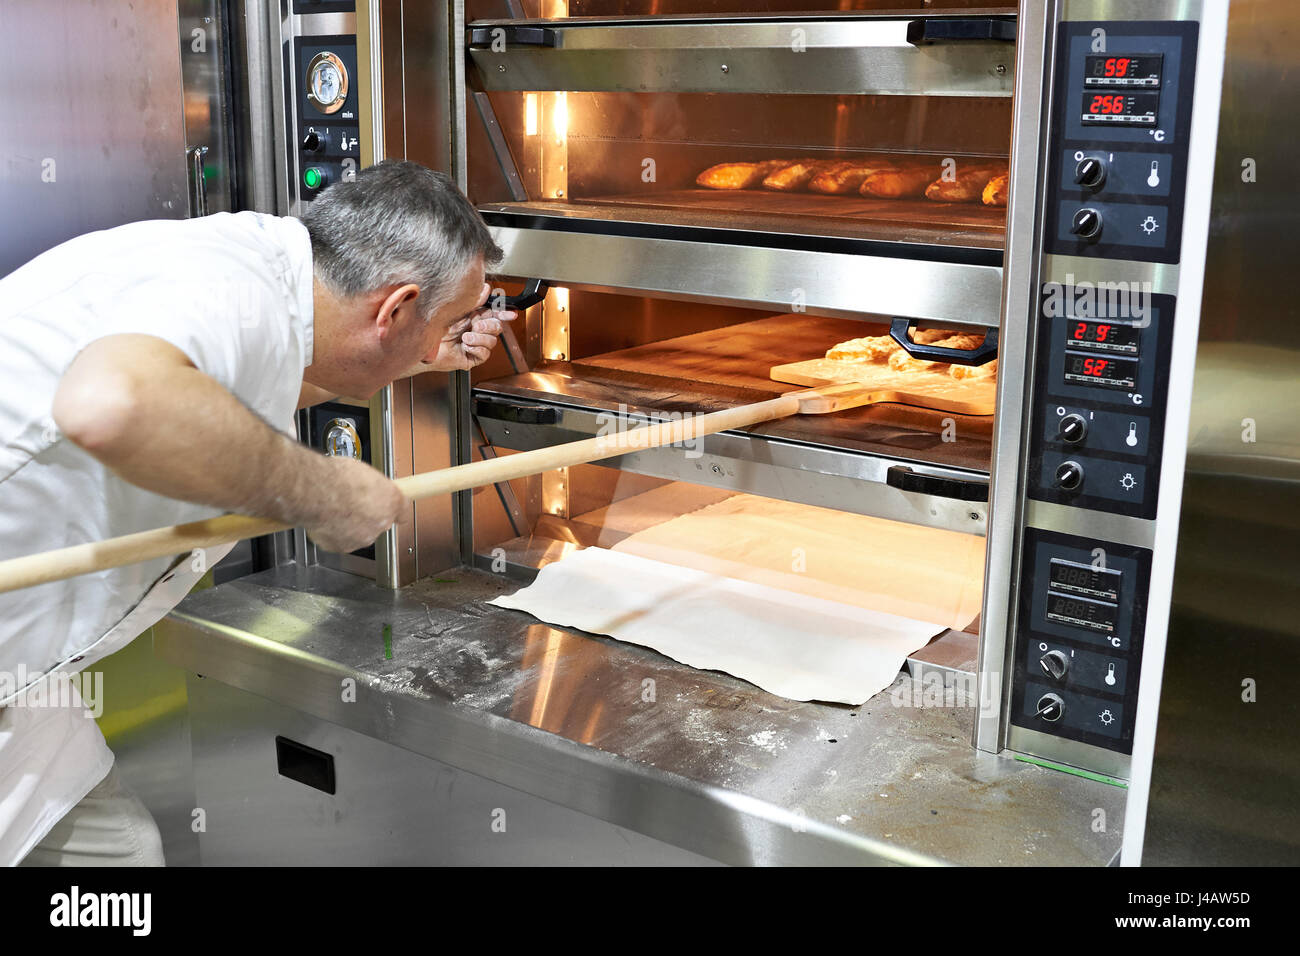 Baker bakes bread in the oven - Stock Image